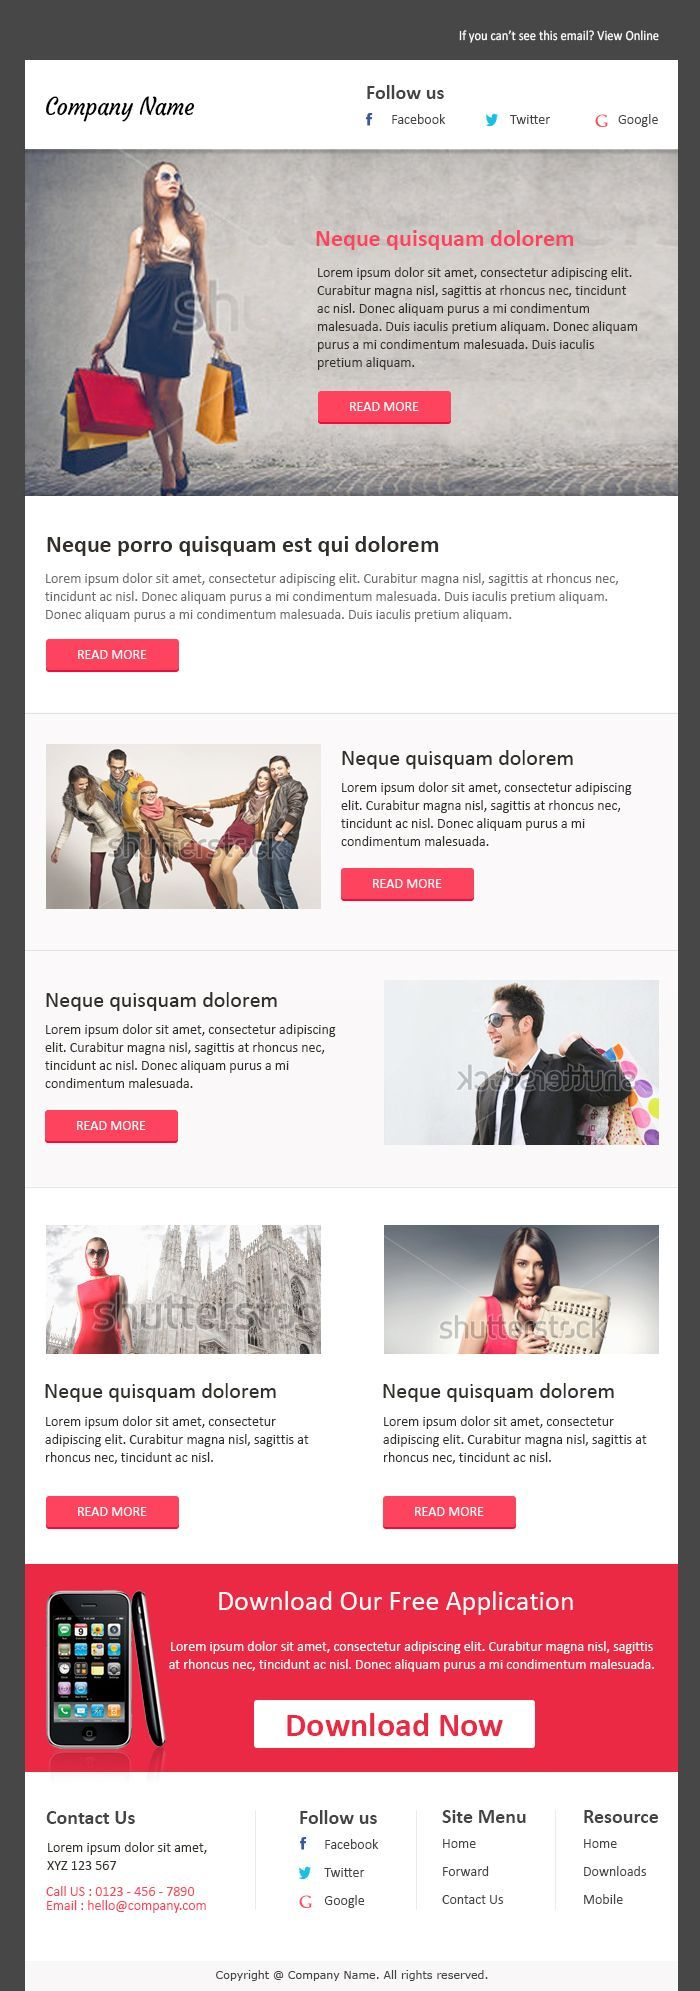 Email Newsletter Examples Business Email Templates Sample With